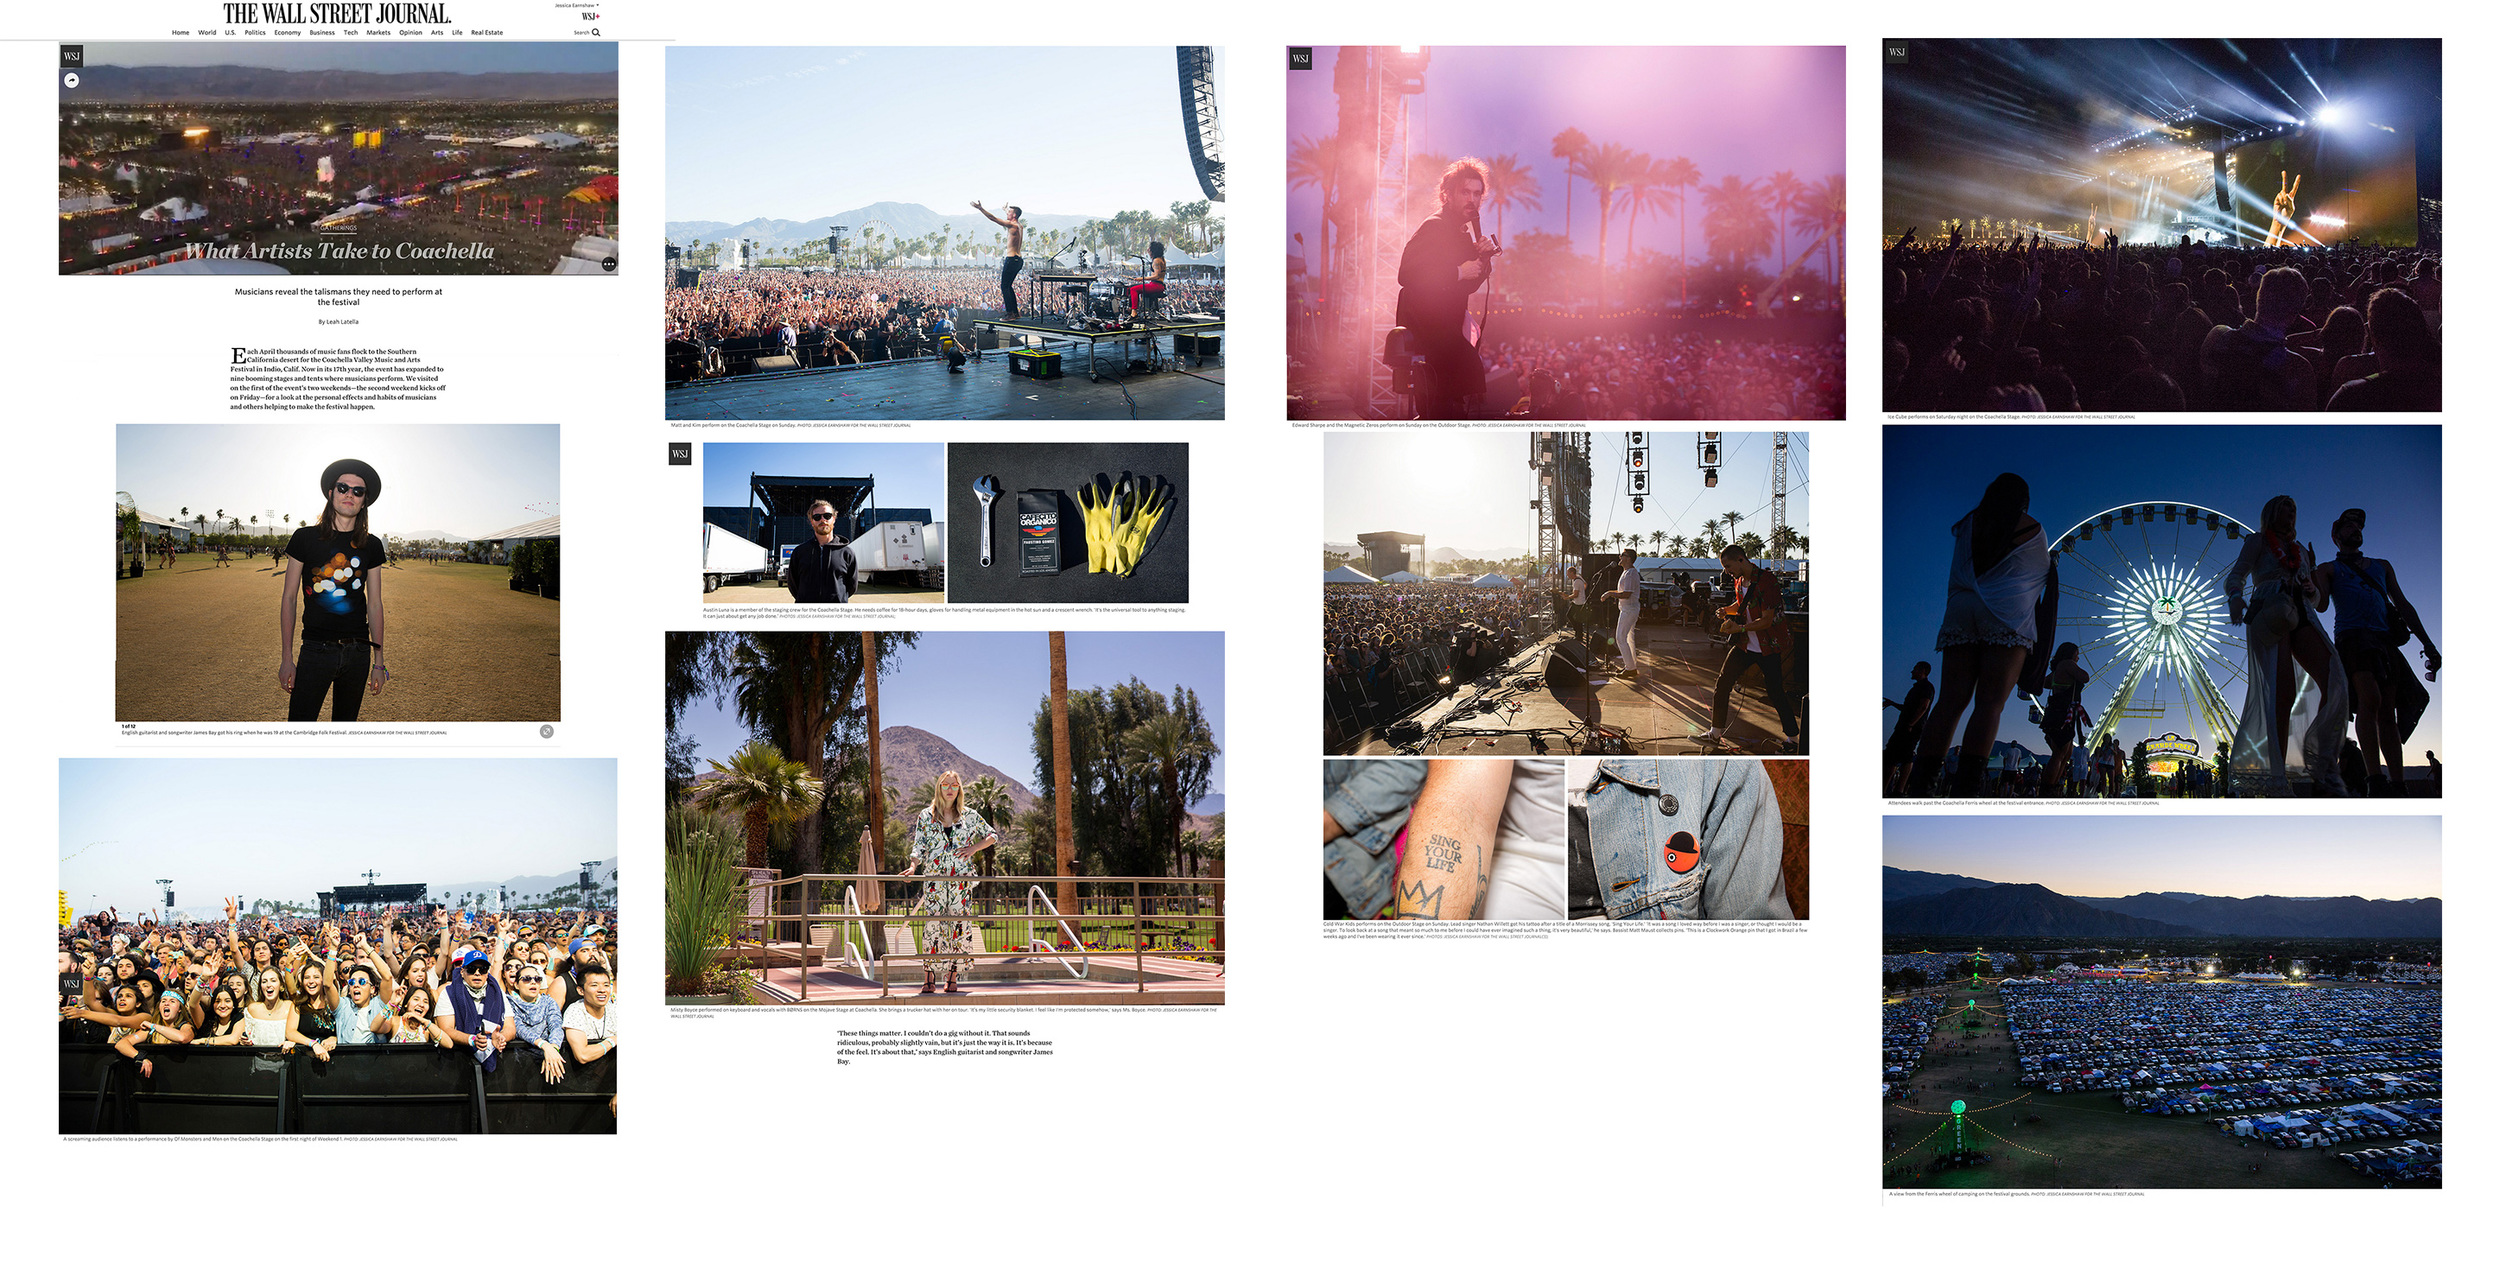 The Wall Street Journal,    What Artists Take To Coachella, April 23, 2016